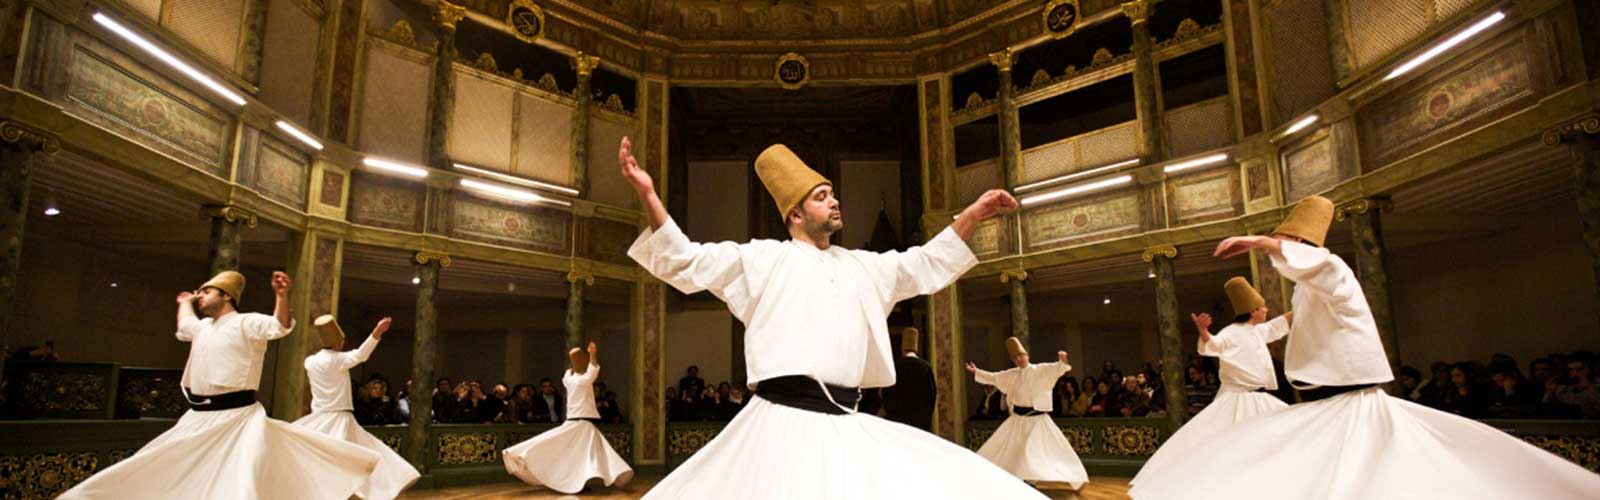 Whirling Dervishes Cappadocia Turkey